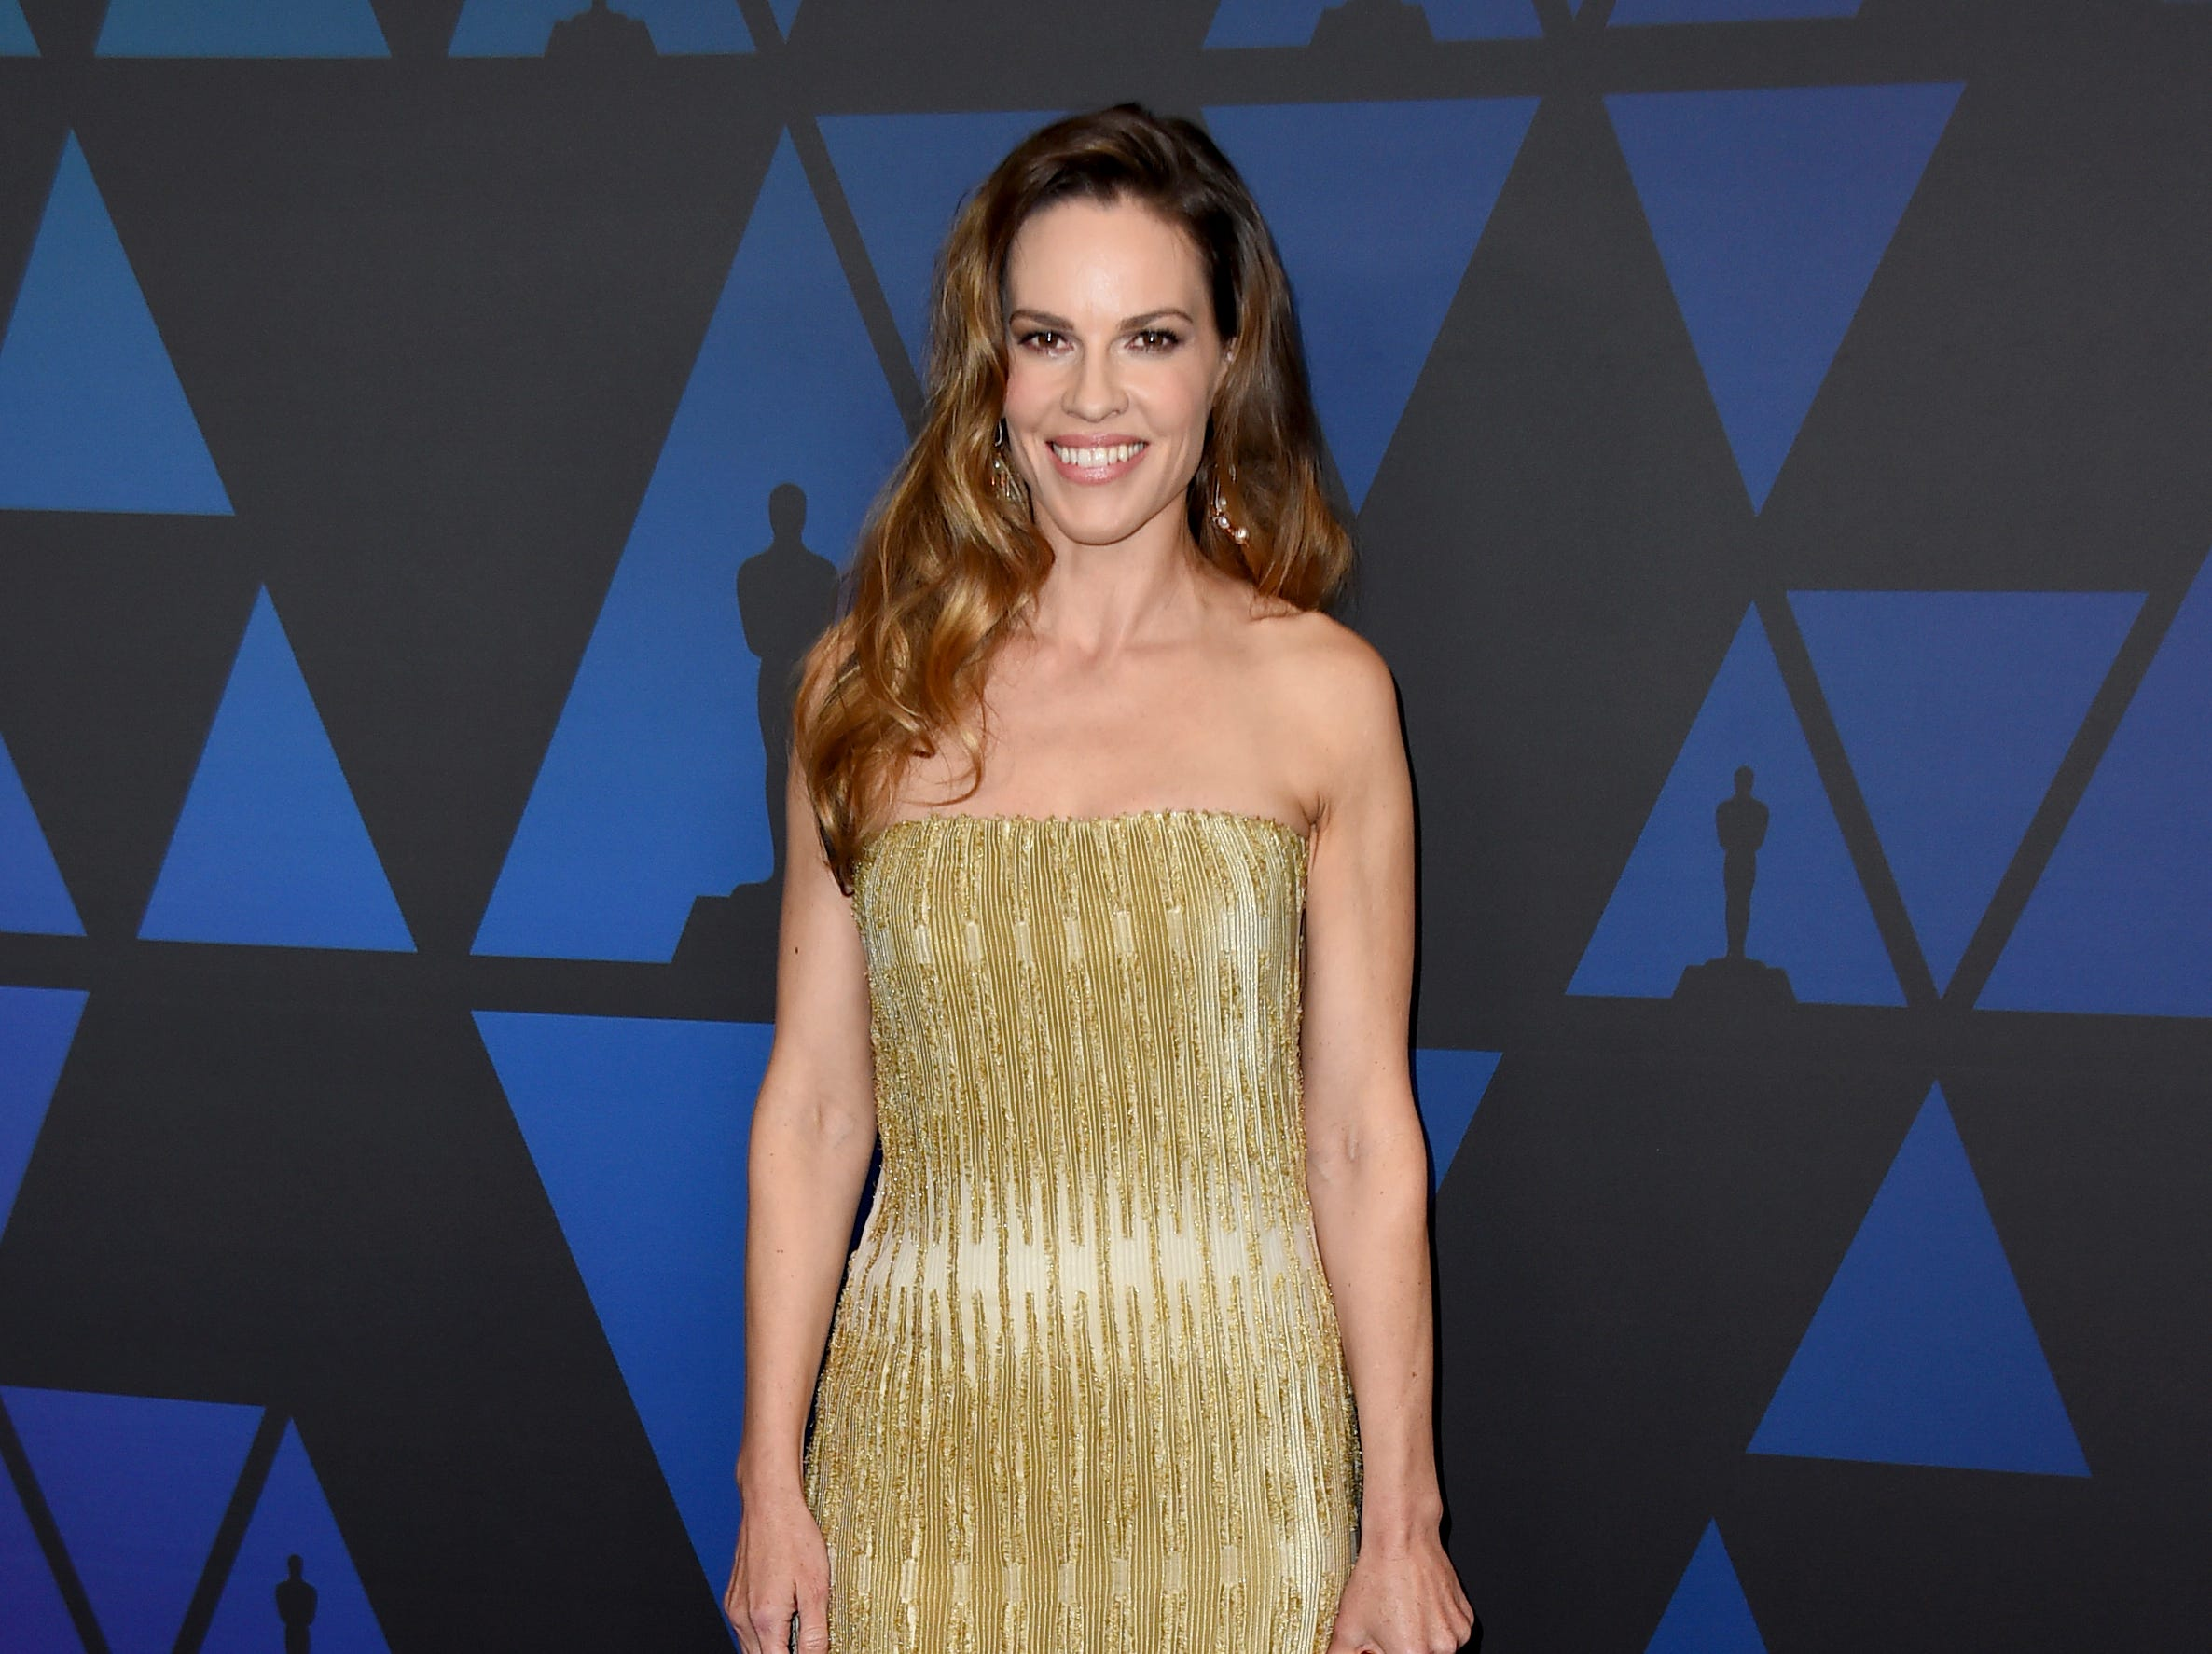 Hilary Swank arrives at the Governors Awards on Sunday, Nov. 18, 2018, at the Dolby Theatre in Los Angeles. (Photo by Jordan Strauss/Invision/AP) ORG XMIT: CAPM162